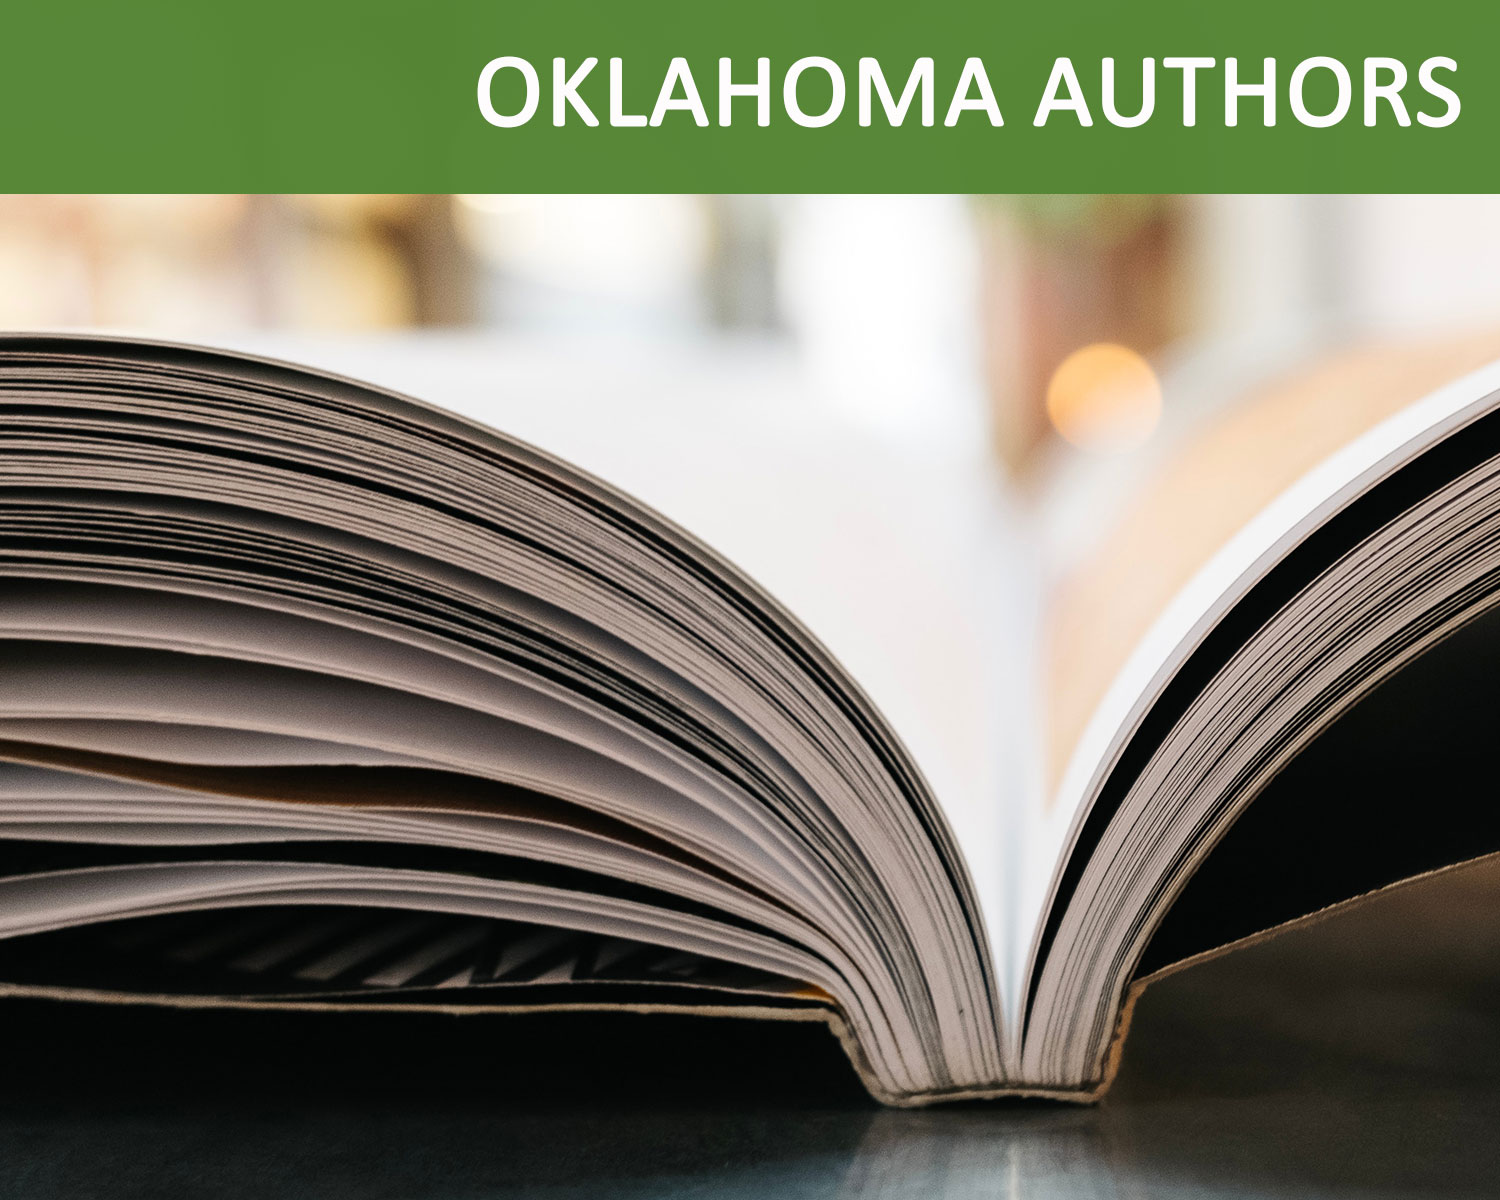 Collection of Oklahoma Authors and Bios